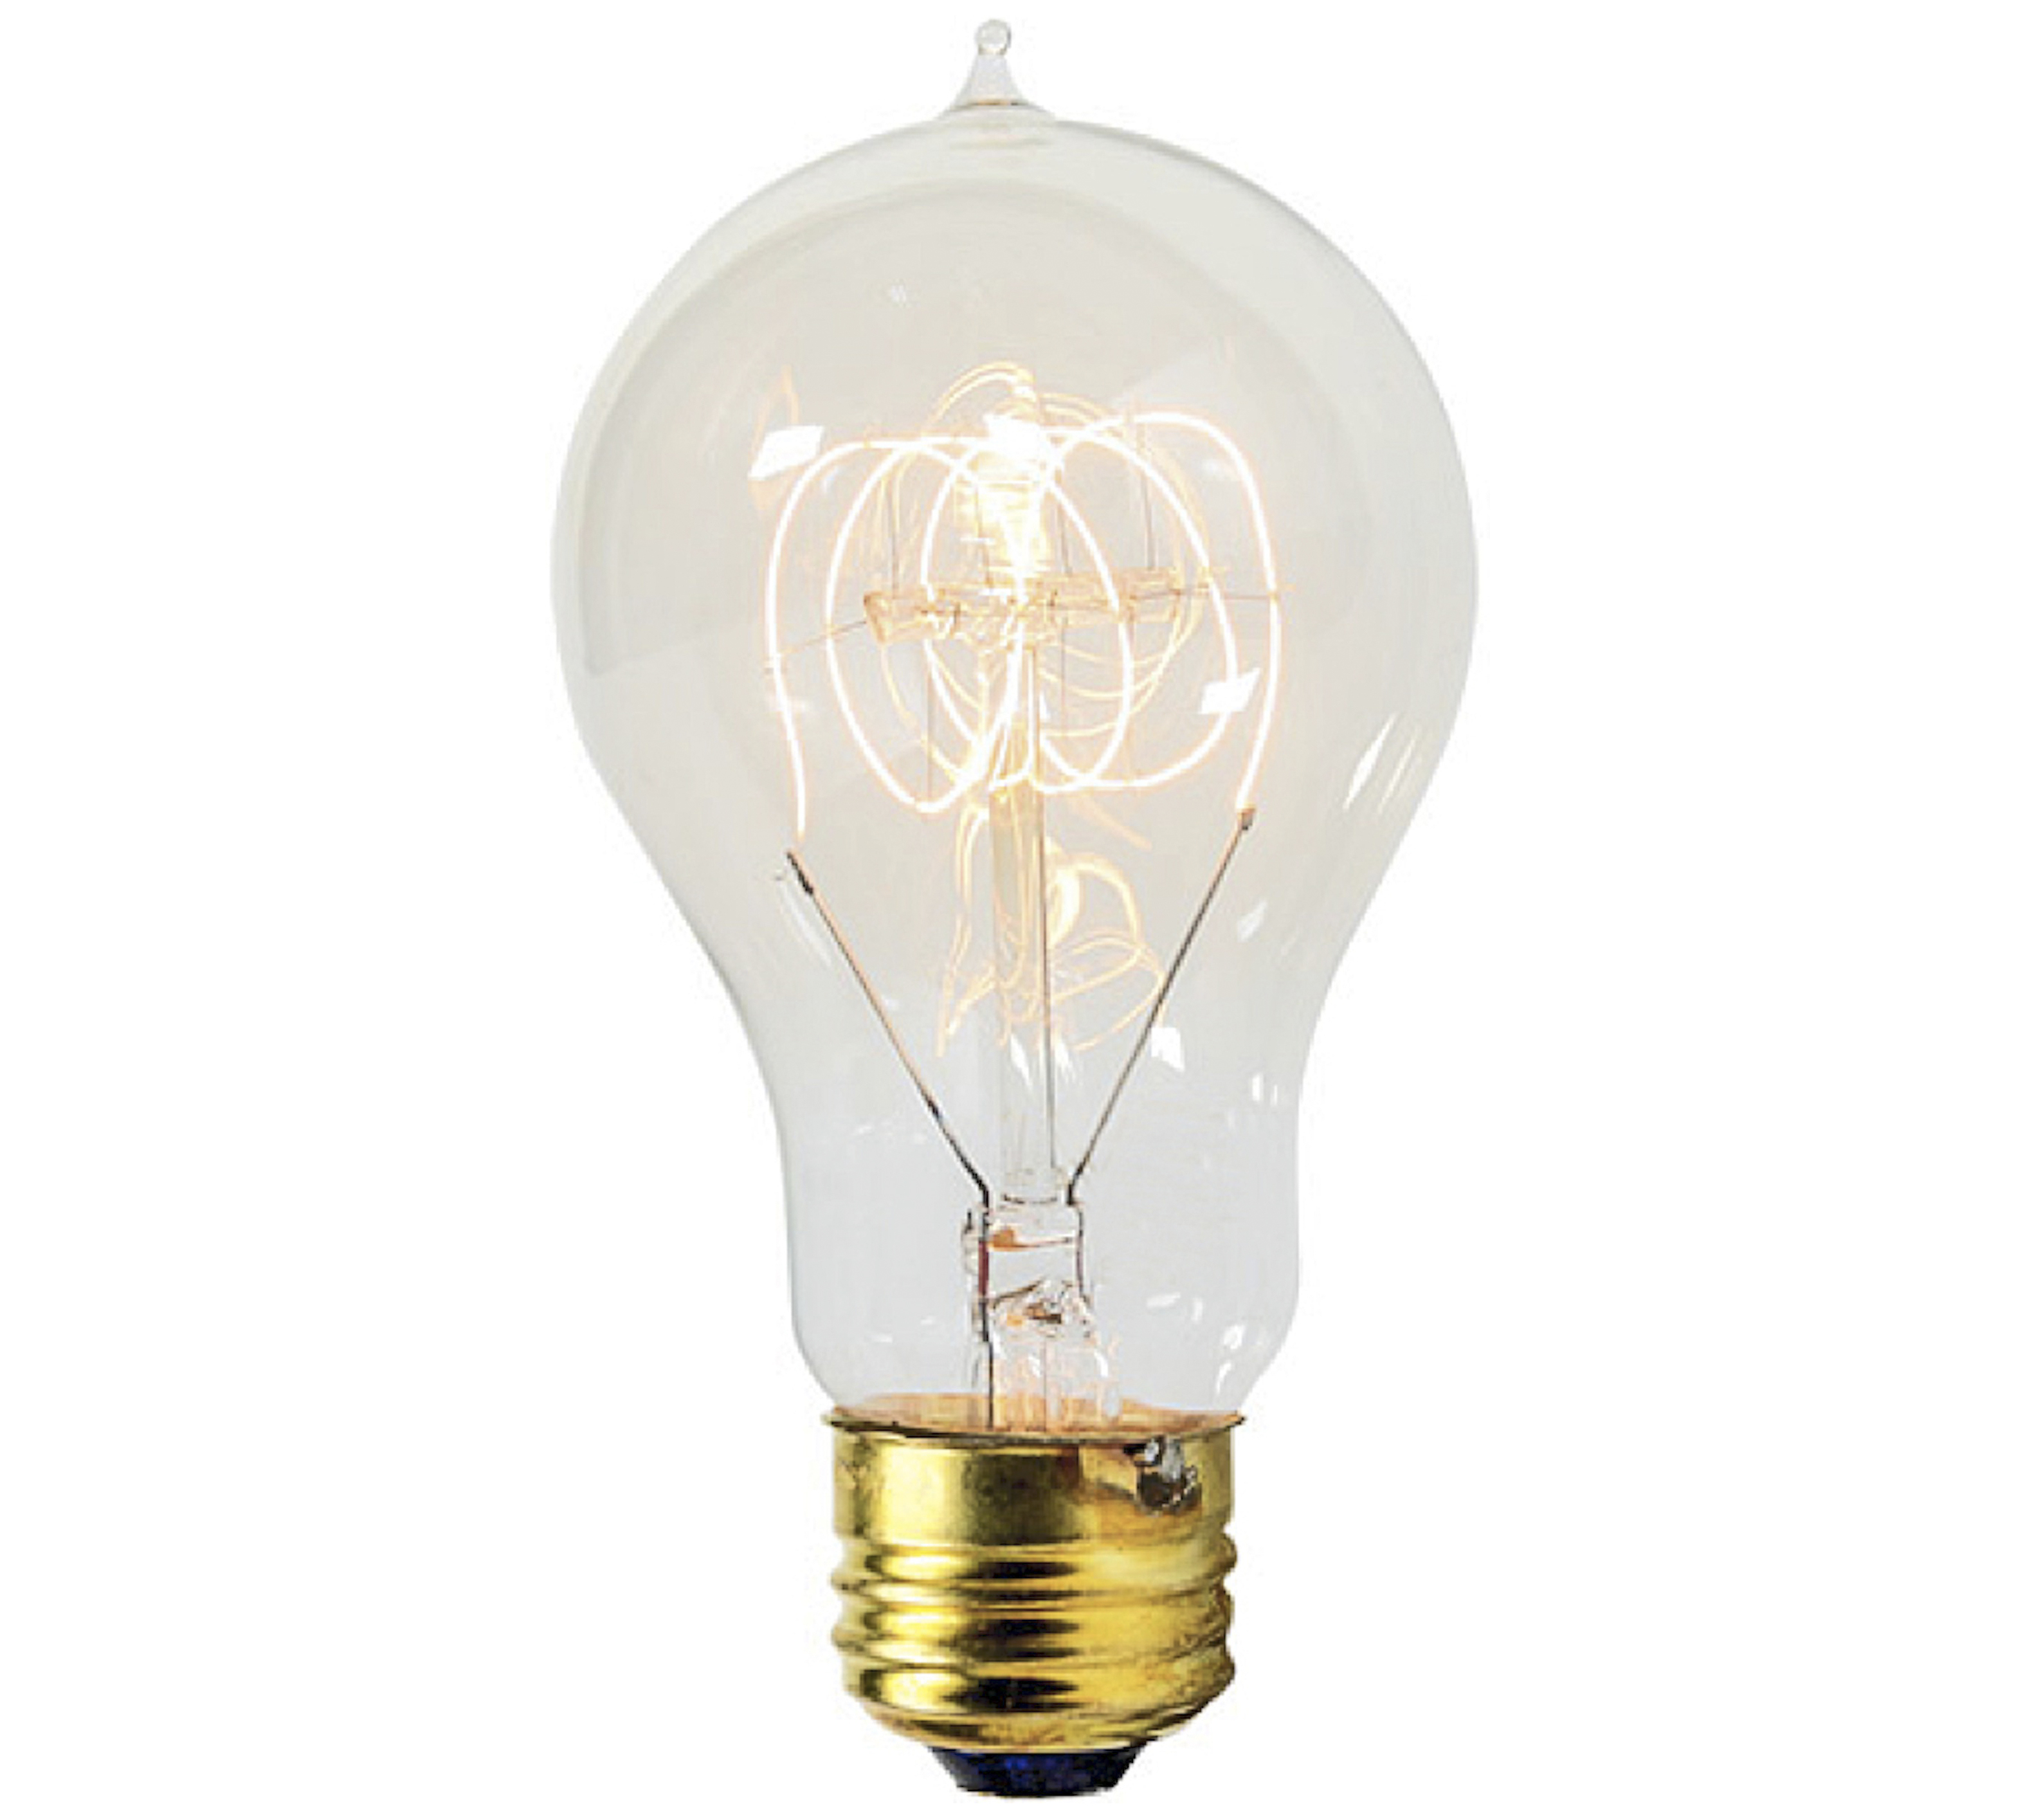 40w light bulb on storenvy A light bulb